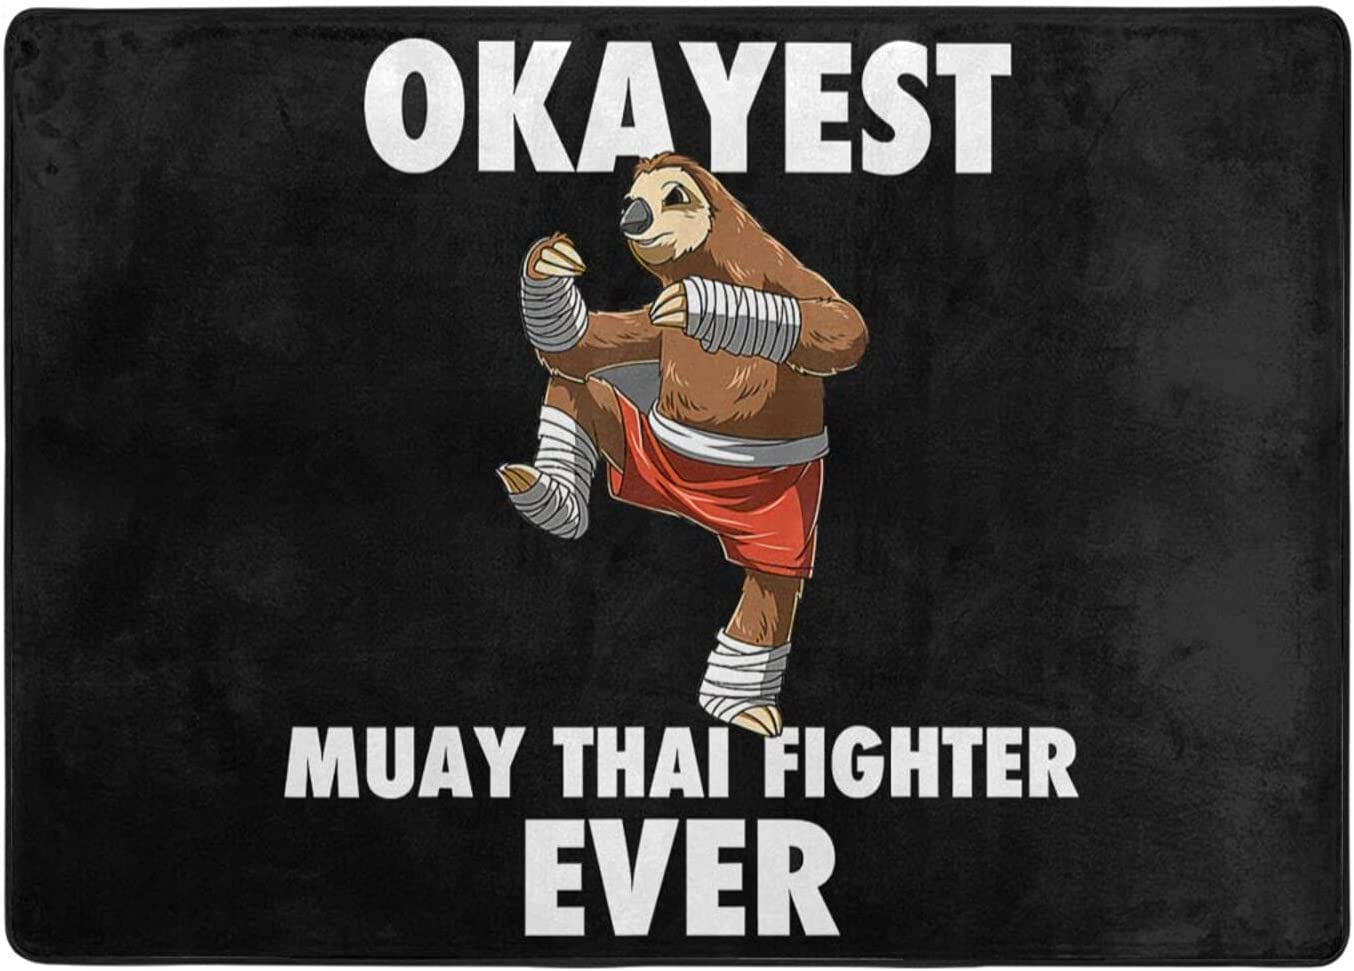 wobzfrok Funny Okayest Sloth Fighter Ever Novelty a 2021 Doormat Sale Home